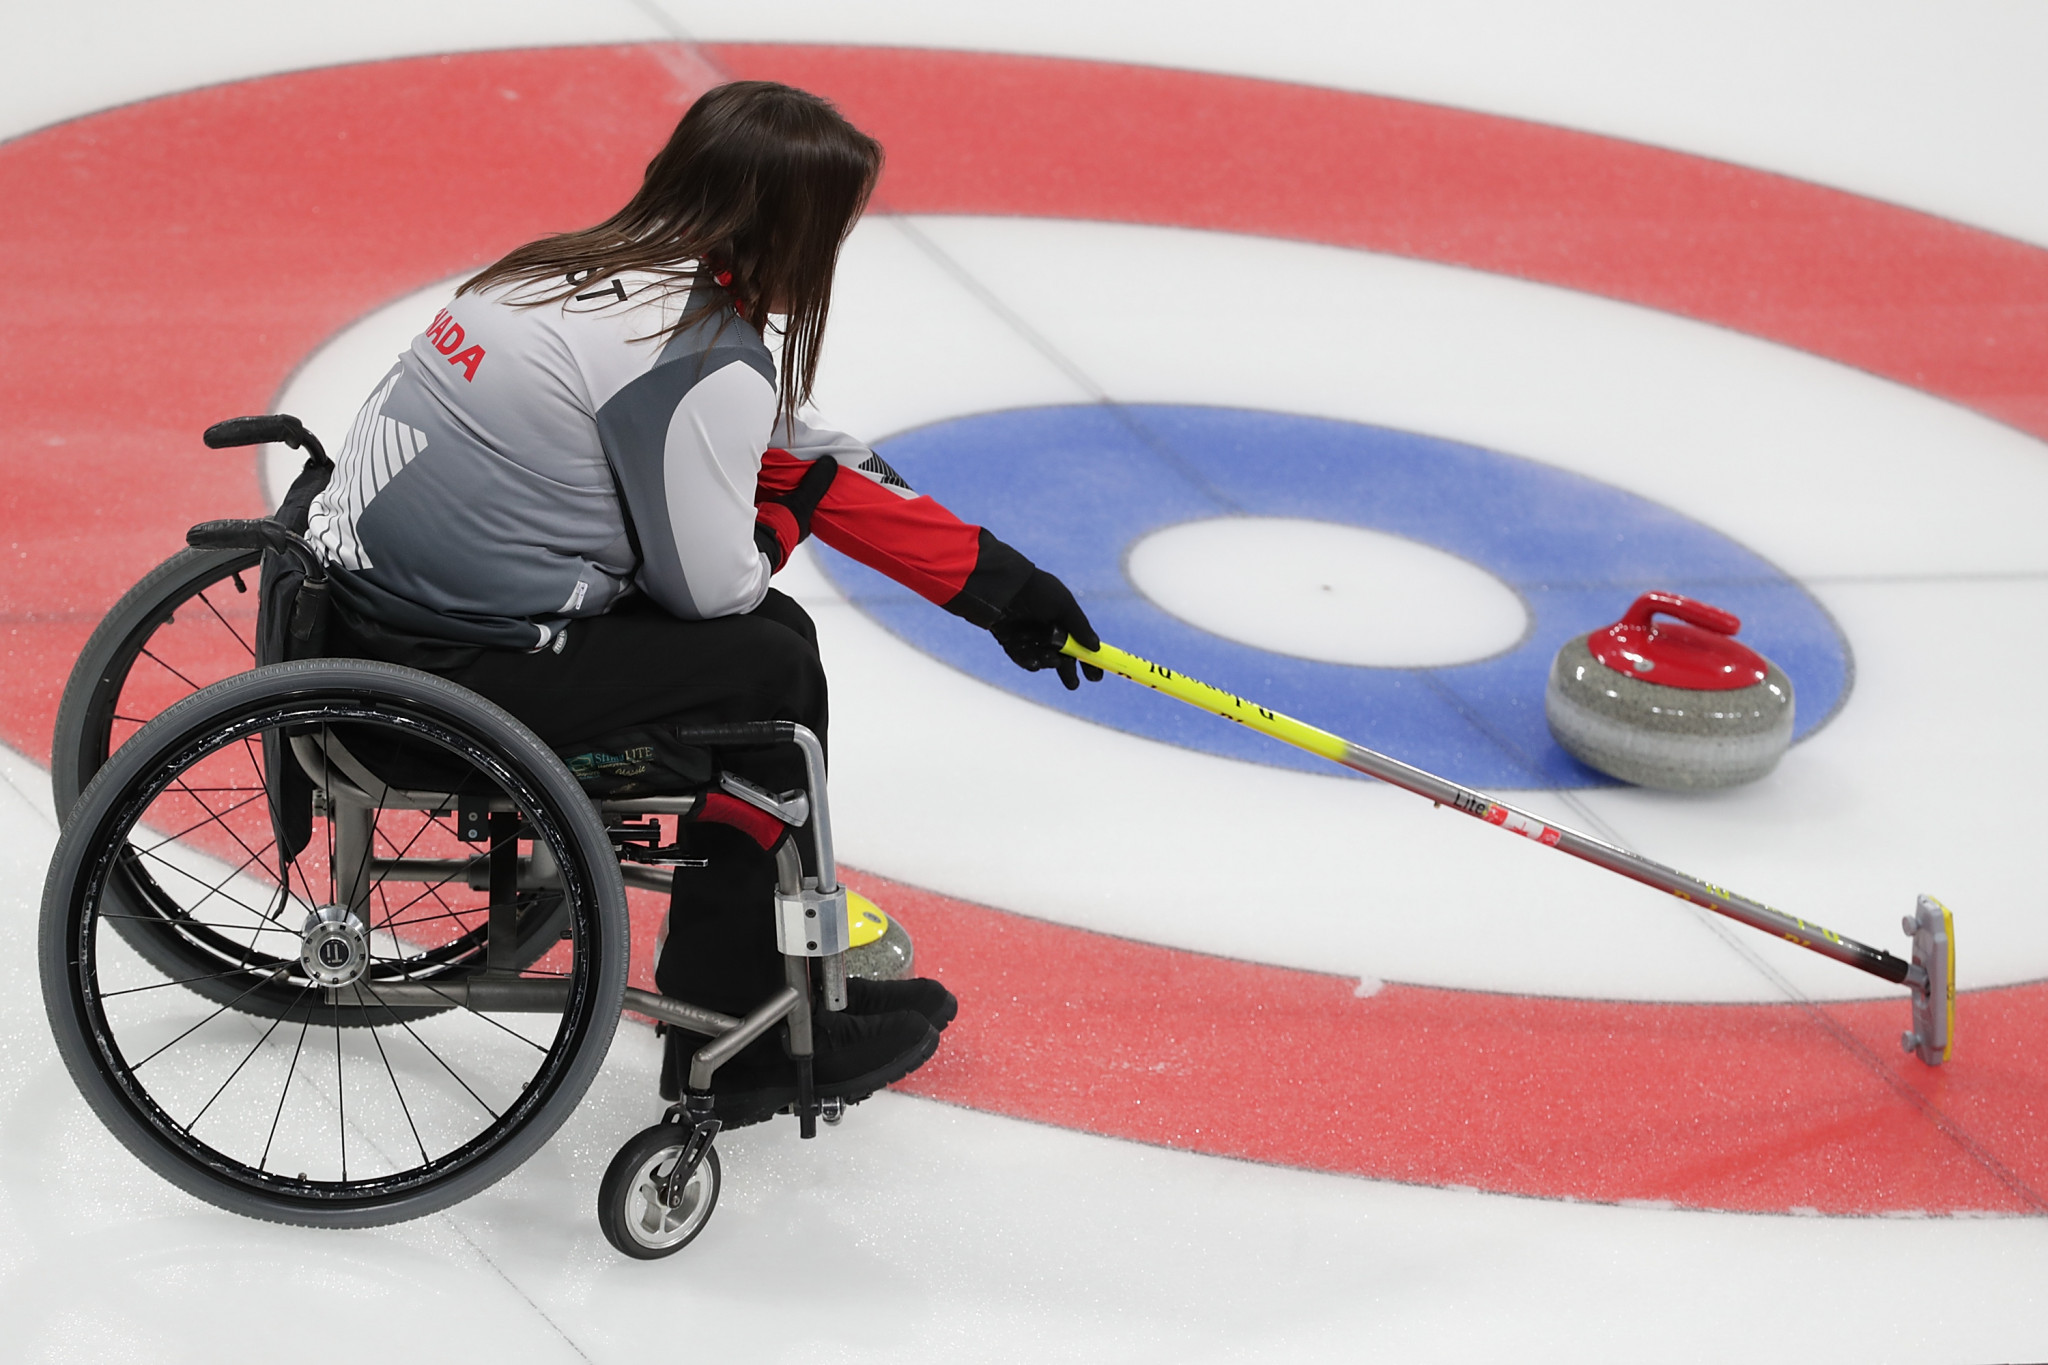 Lee Moon-tae hopes sports like wheelchair curling can become commercially successful in South Korea following the Winter Paralympics ©Getty Images